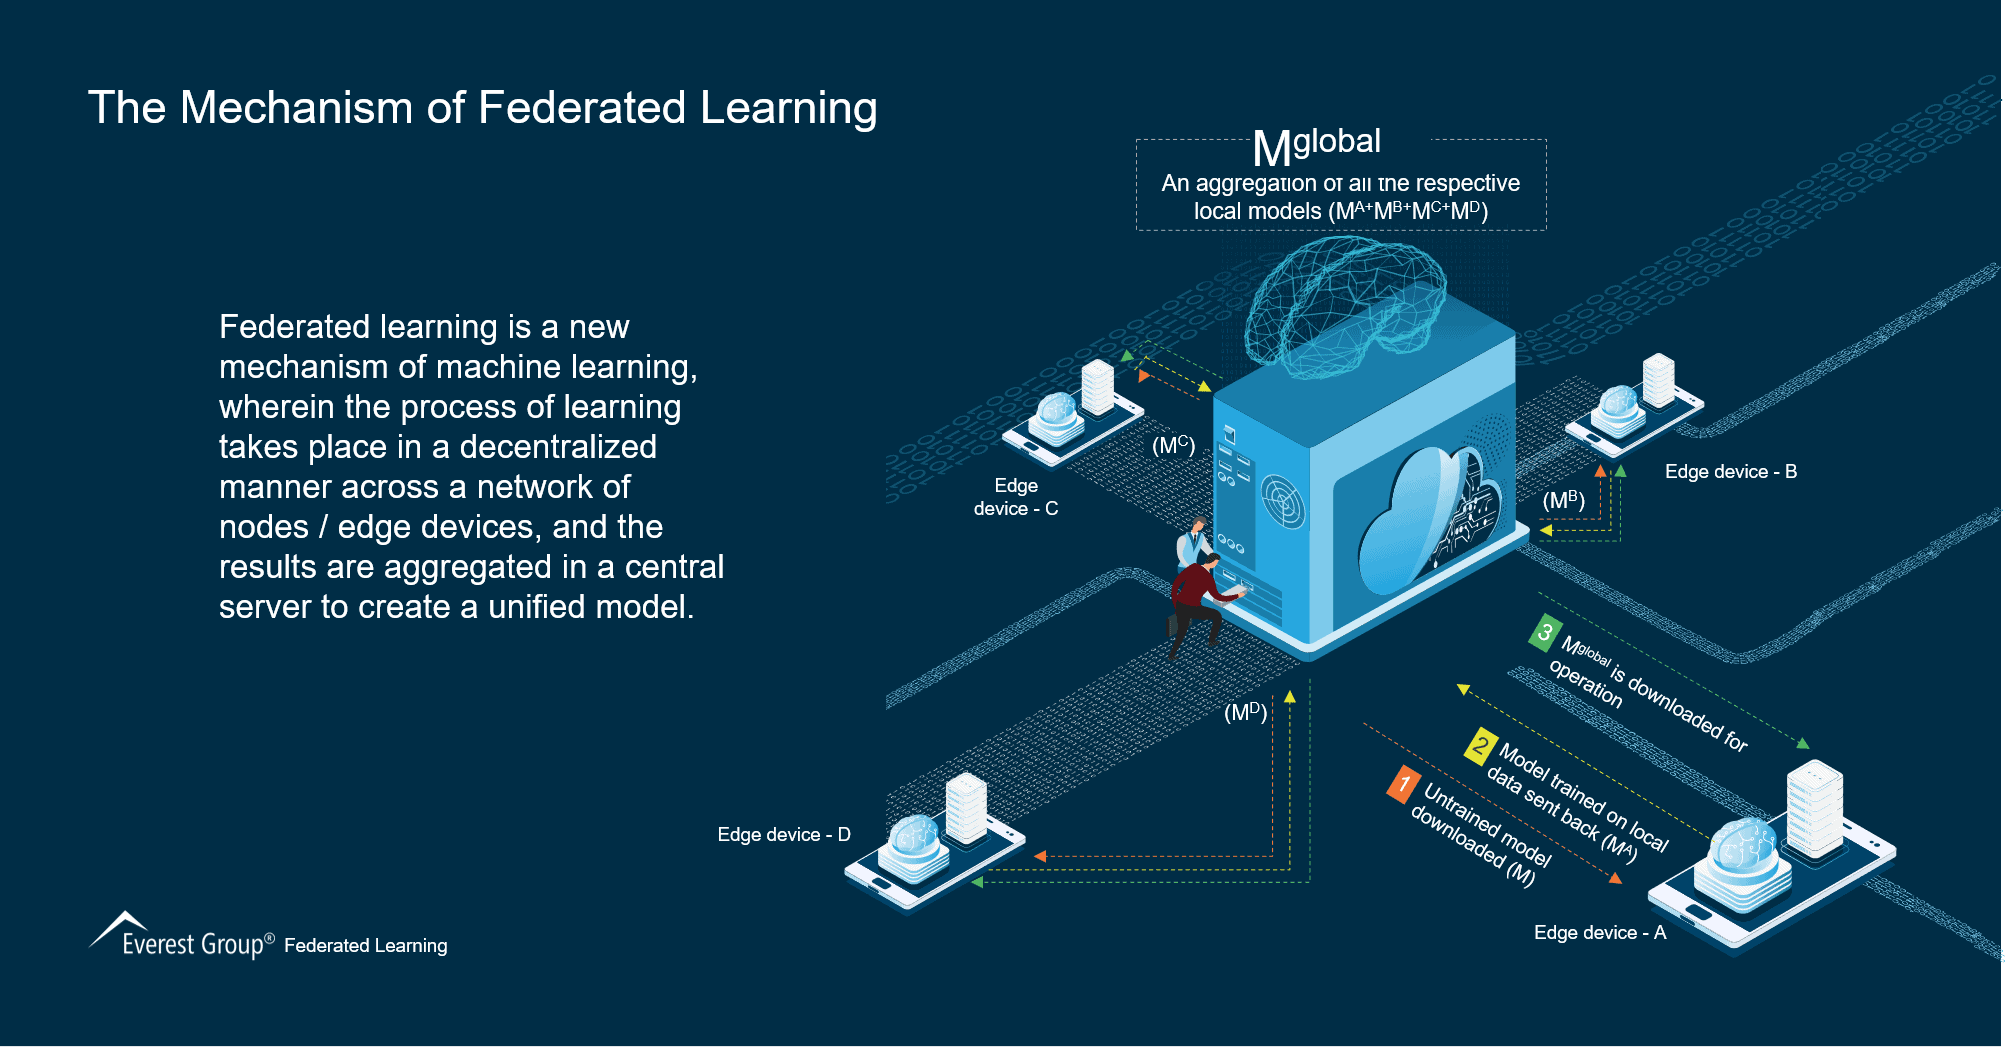 The Mechanism of Federated Learning